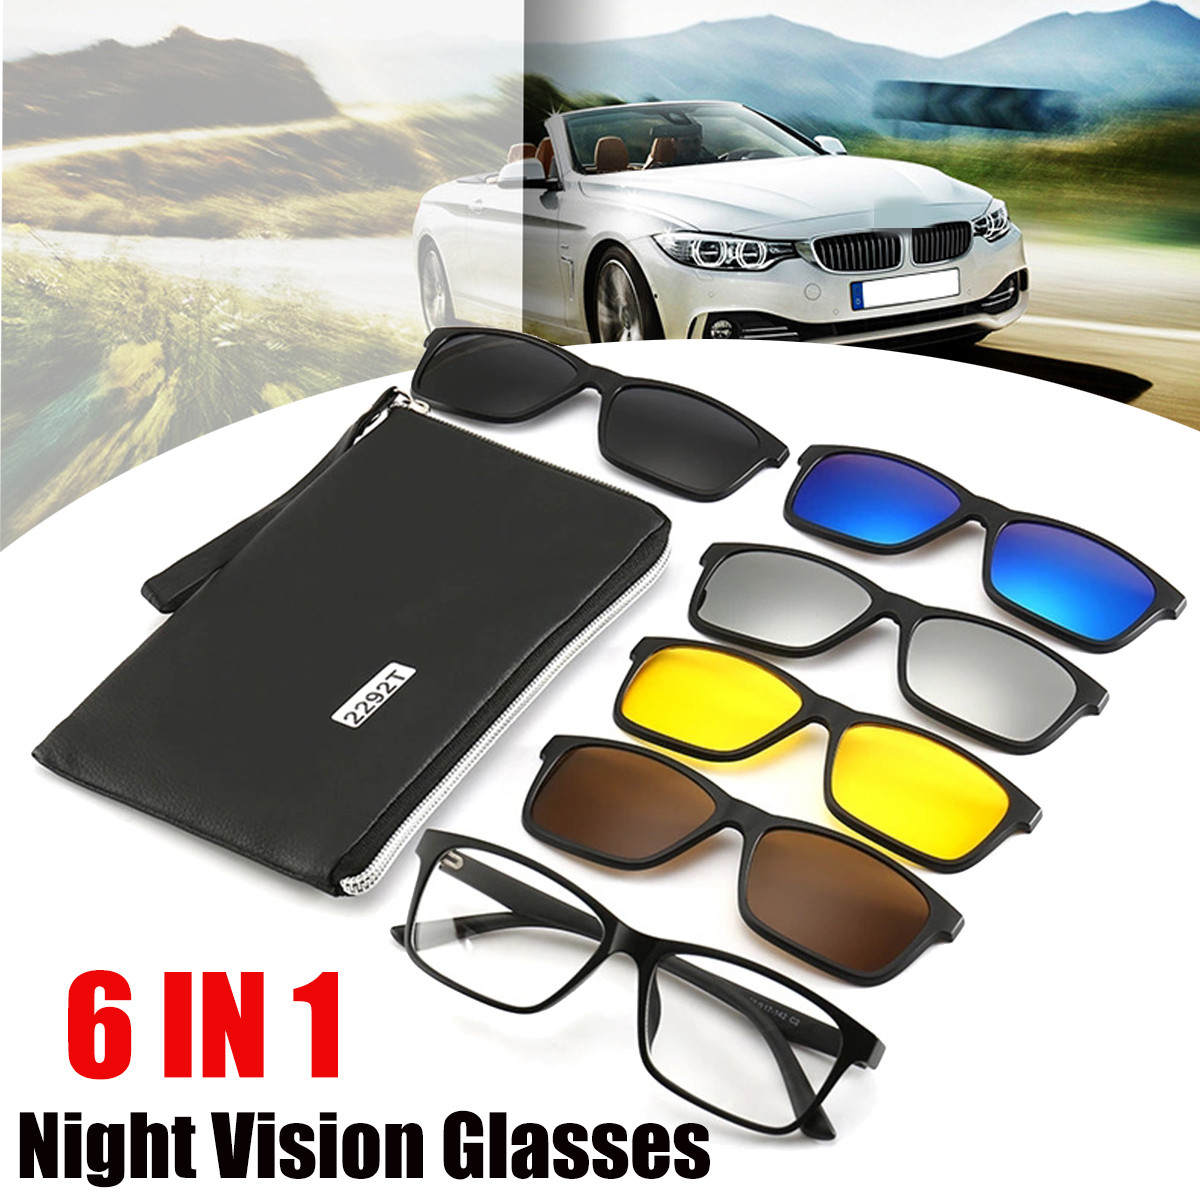 New <font><b>6</b></font> <font><b>IN</b></font> <font><b>1</b></font> Night Vision Glasses Polarized <font><b>Sunglasses</b></font> TR90 Retro Frame Eyewear Night Vision Driving Optical Glasses With Bag image